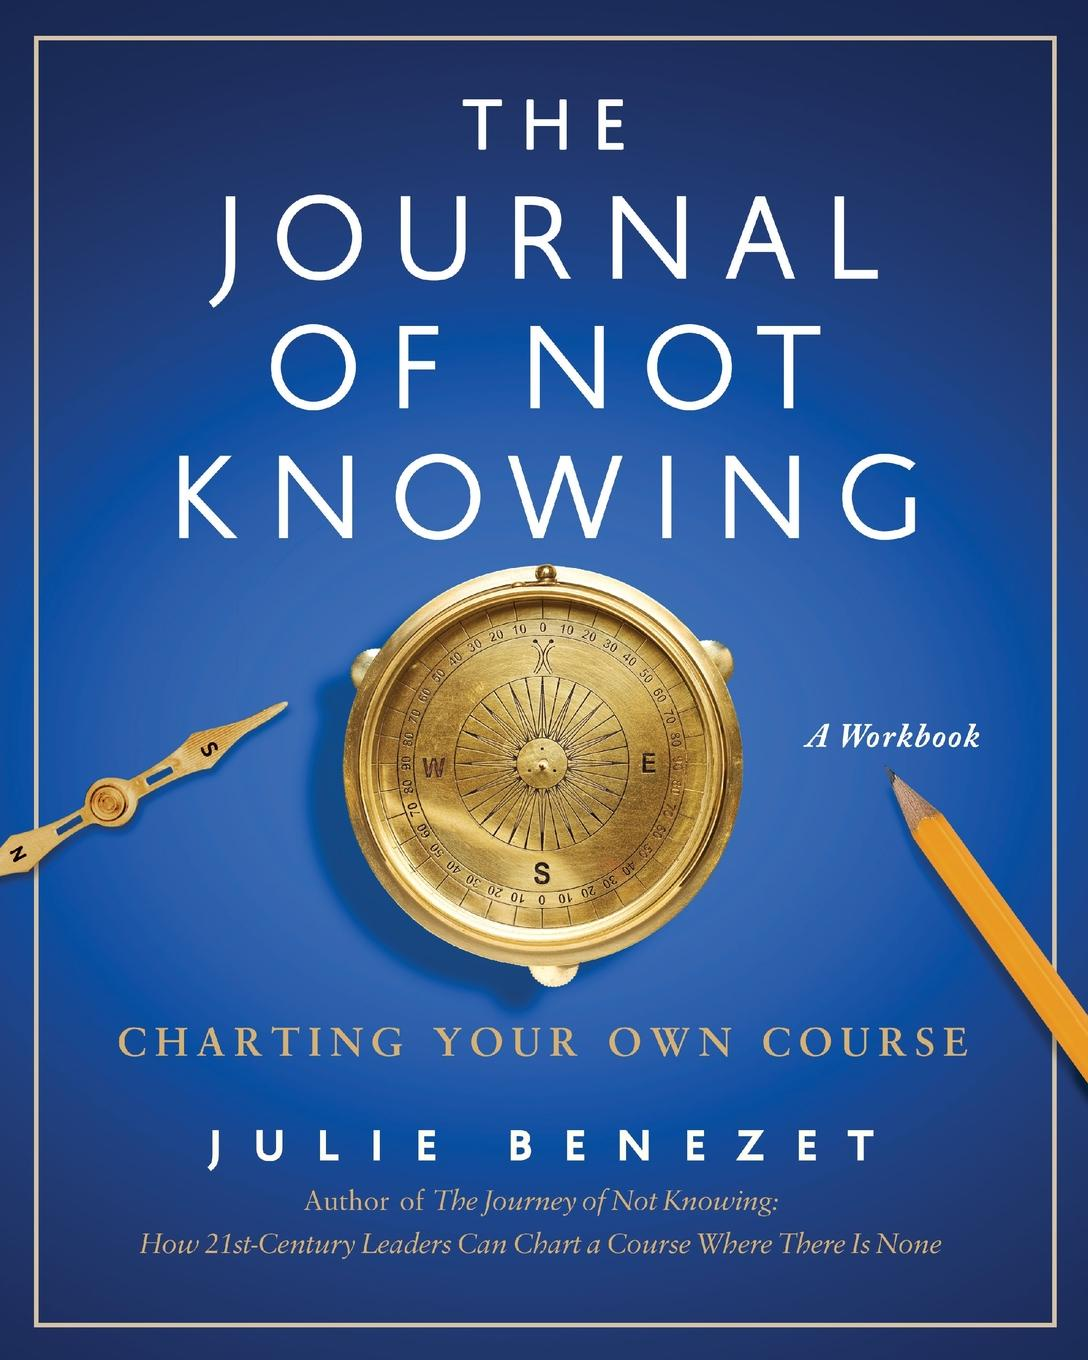 Julie Benezet The Journal of Not Knowing. Charting Your Own Course